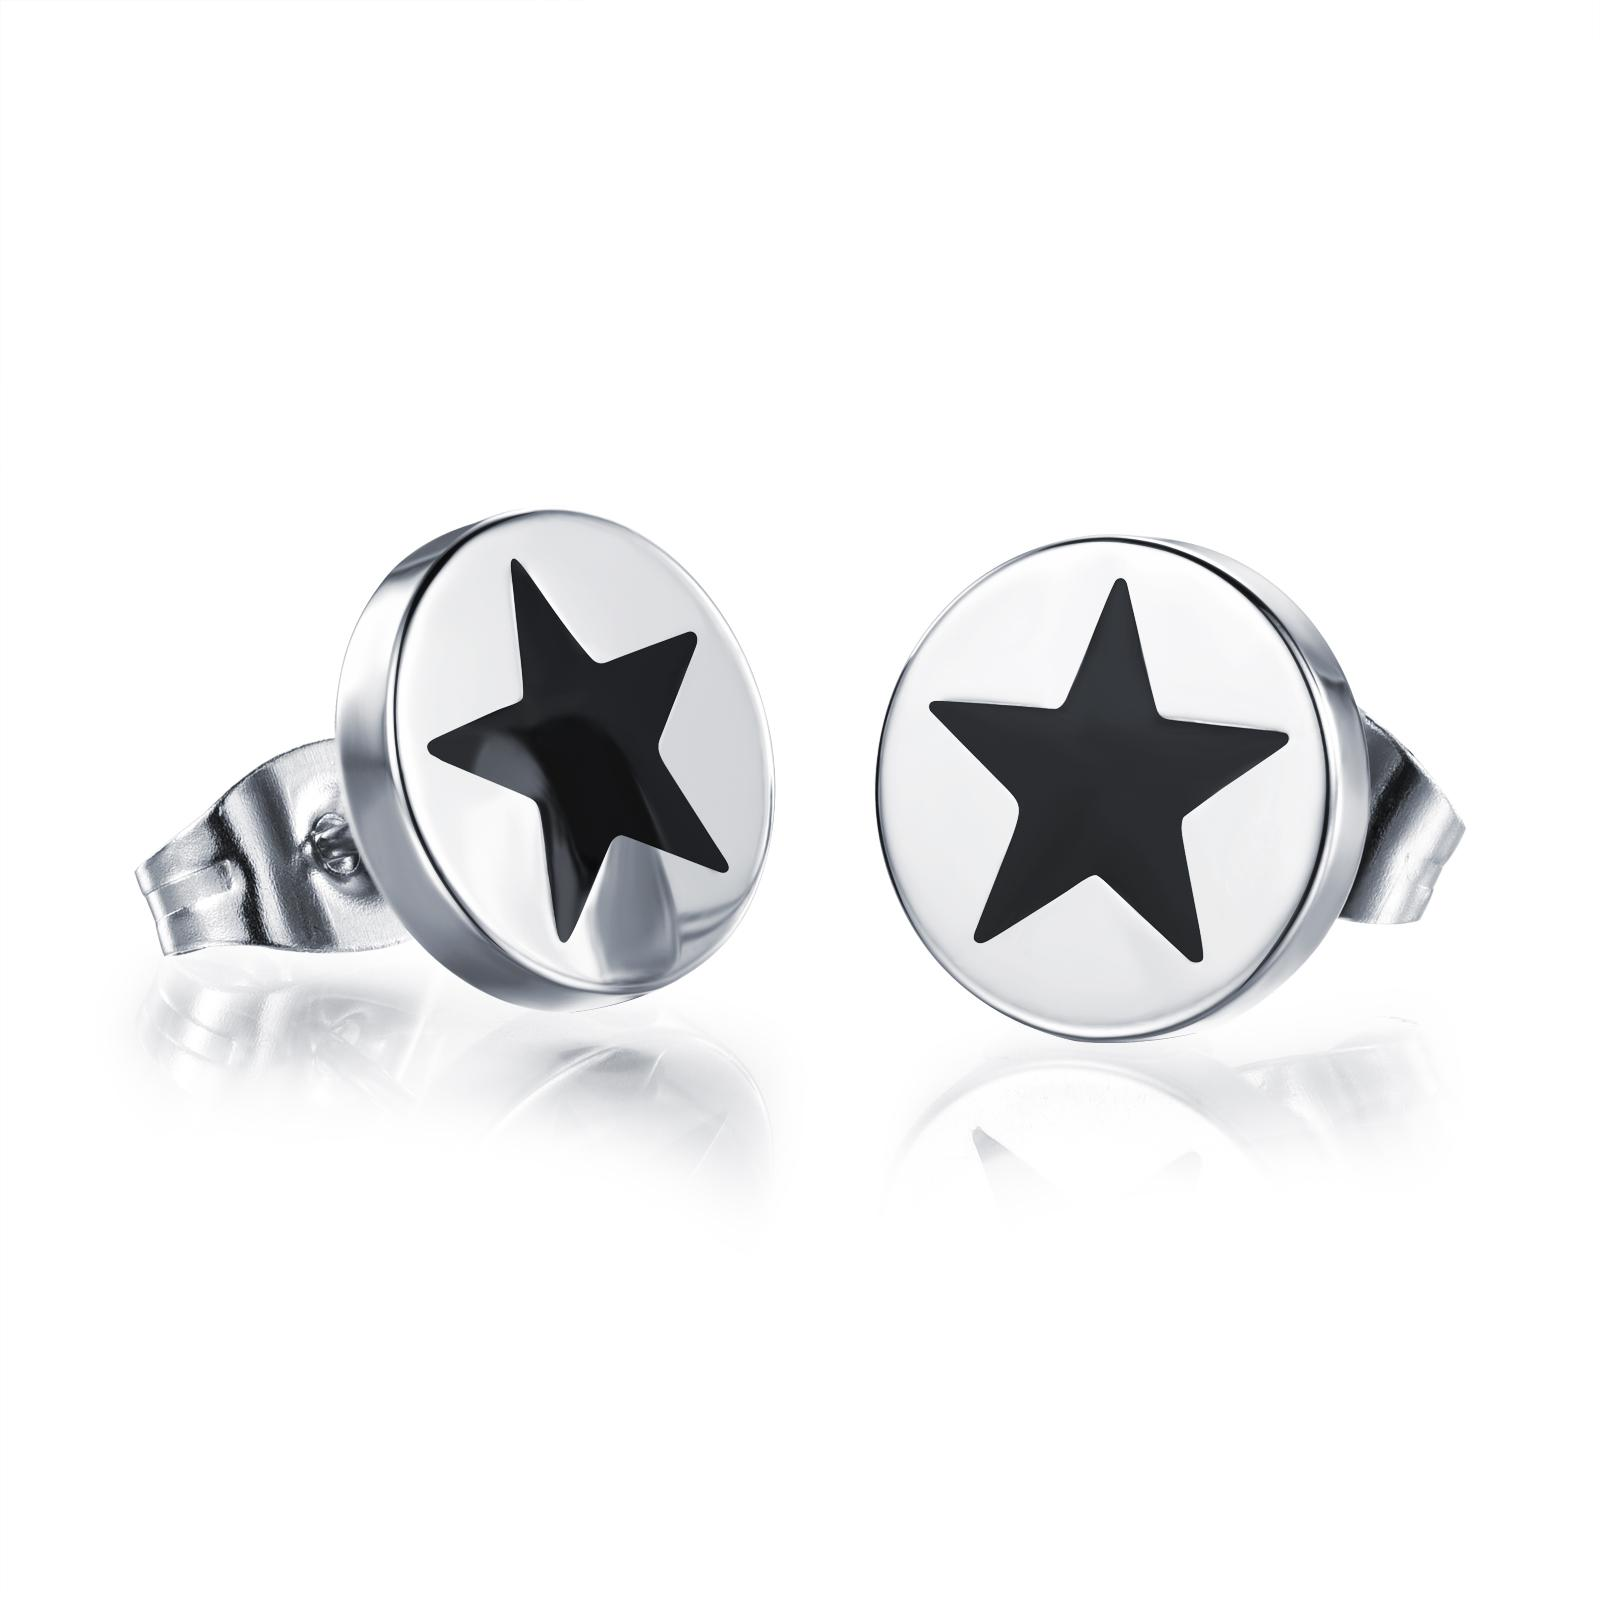 Silver Circle Stud Earrings With Star Design Stainless Steel Star  Statement Earrings Best Gift For Her